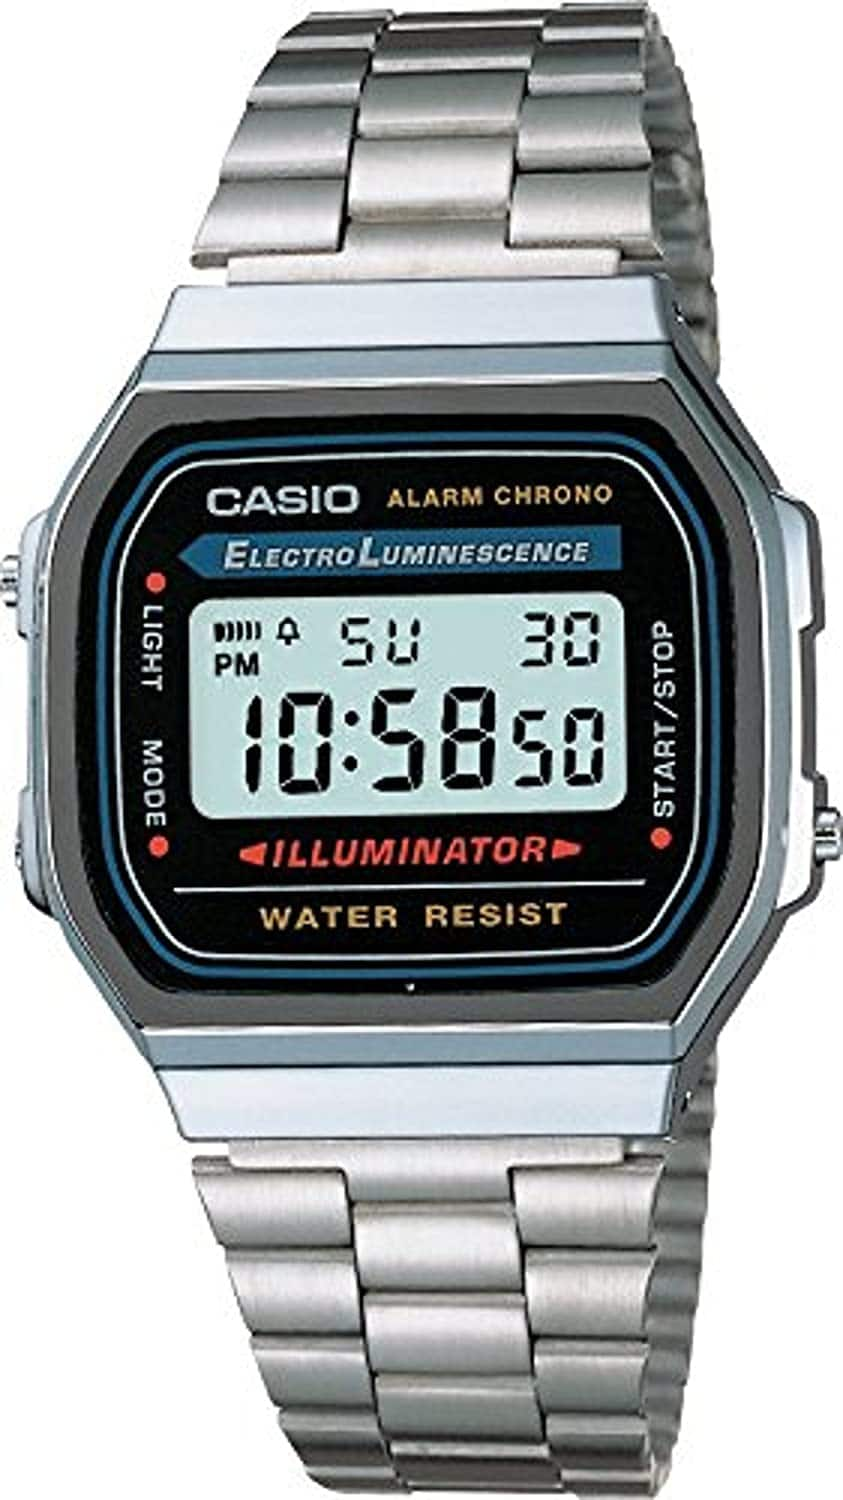 Casio Men's Vintage A168WA-1 Electro Luminescence Watch $18.82